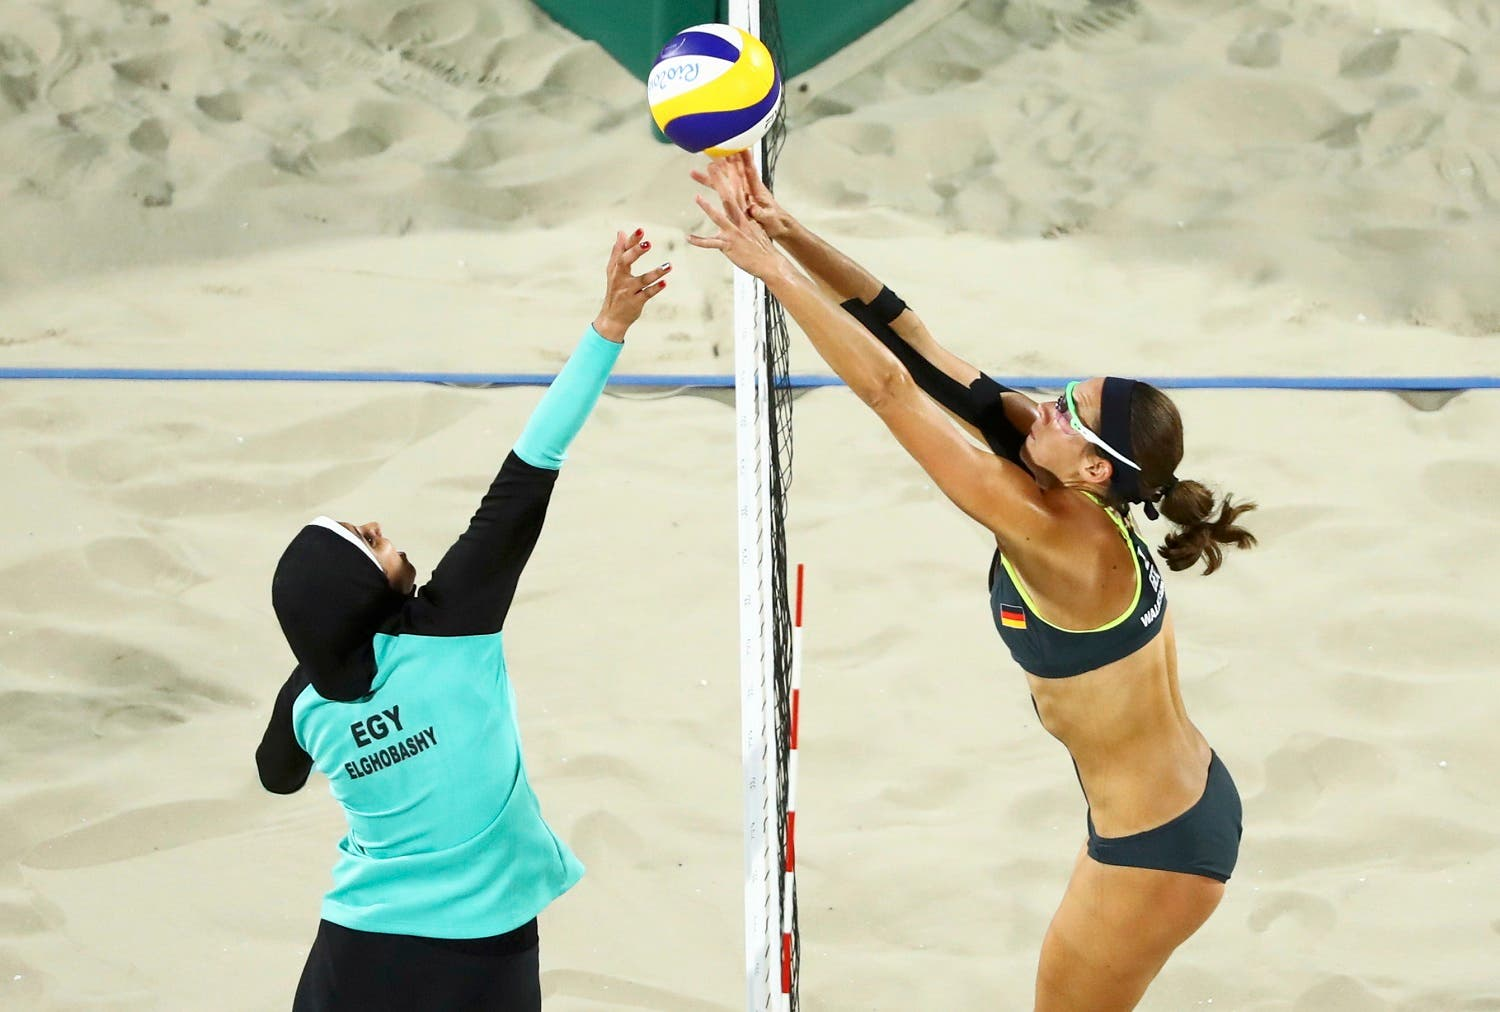 THE ICONIC HIJAB IMAGE: Doaa Elghobashy (EGY) of Egypt and Kira Walkenhorst (GER) of Germany compete in the Olympic beach volleyball. REUTERS/Lucy Nicholson